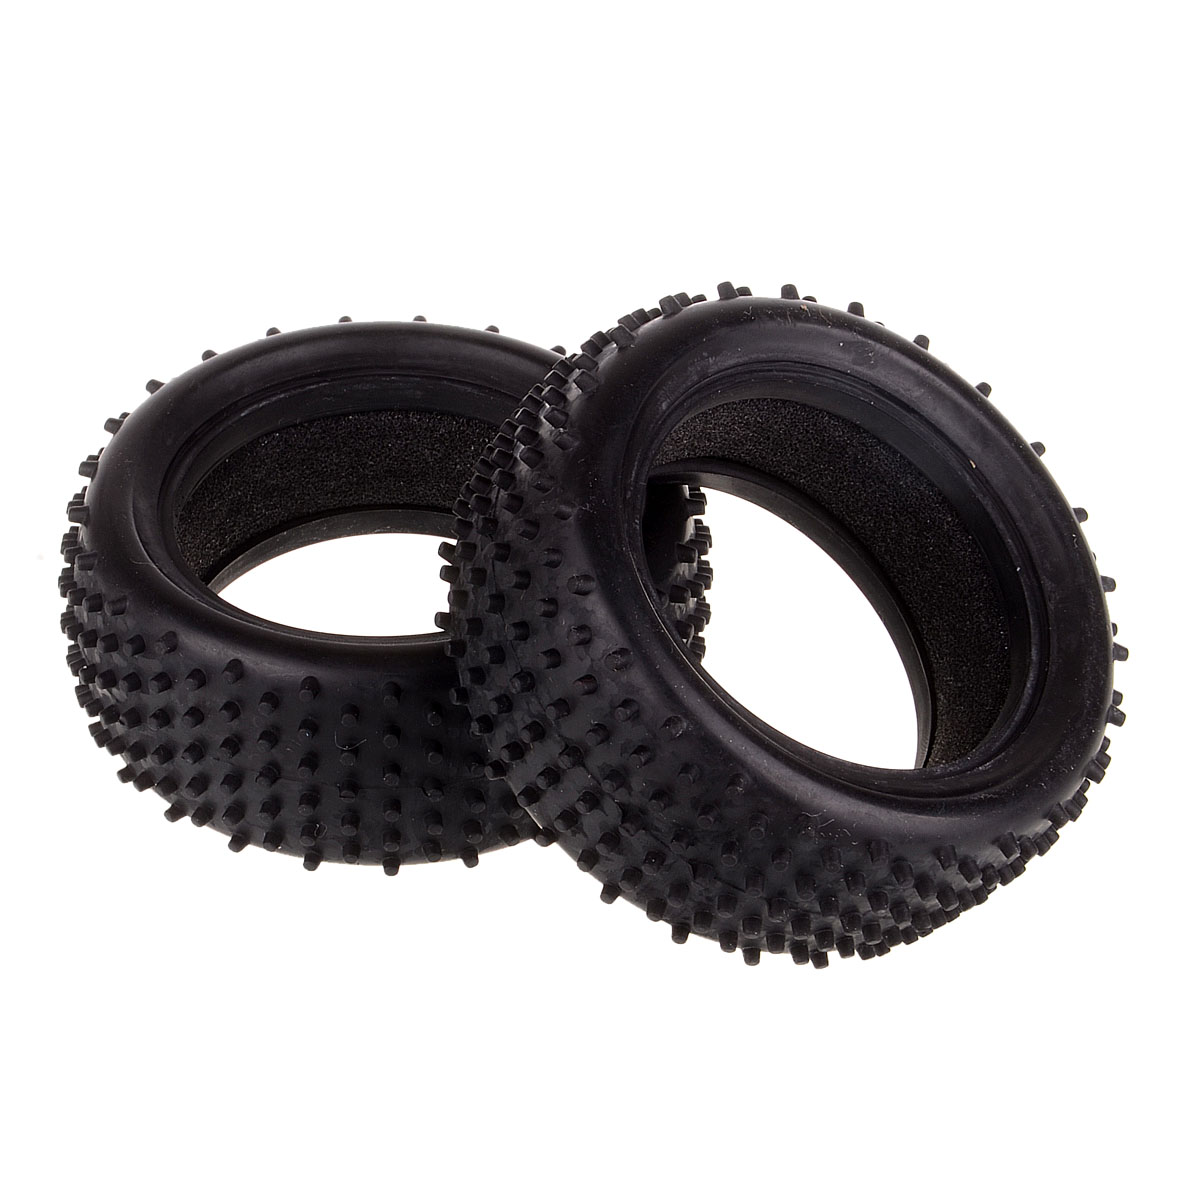 06009 1/10 Off Road Buggy Front Tyre Tires Foam Fit HSP HPI Redcat Spare Parts 2pcs 1 10 rc buggy front tires skin off road front tyre skin with foam fit for hsp redcat off road 94107